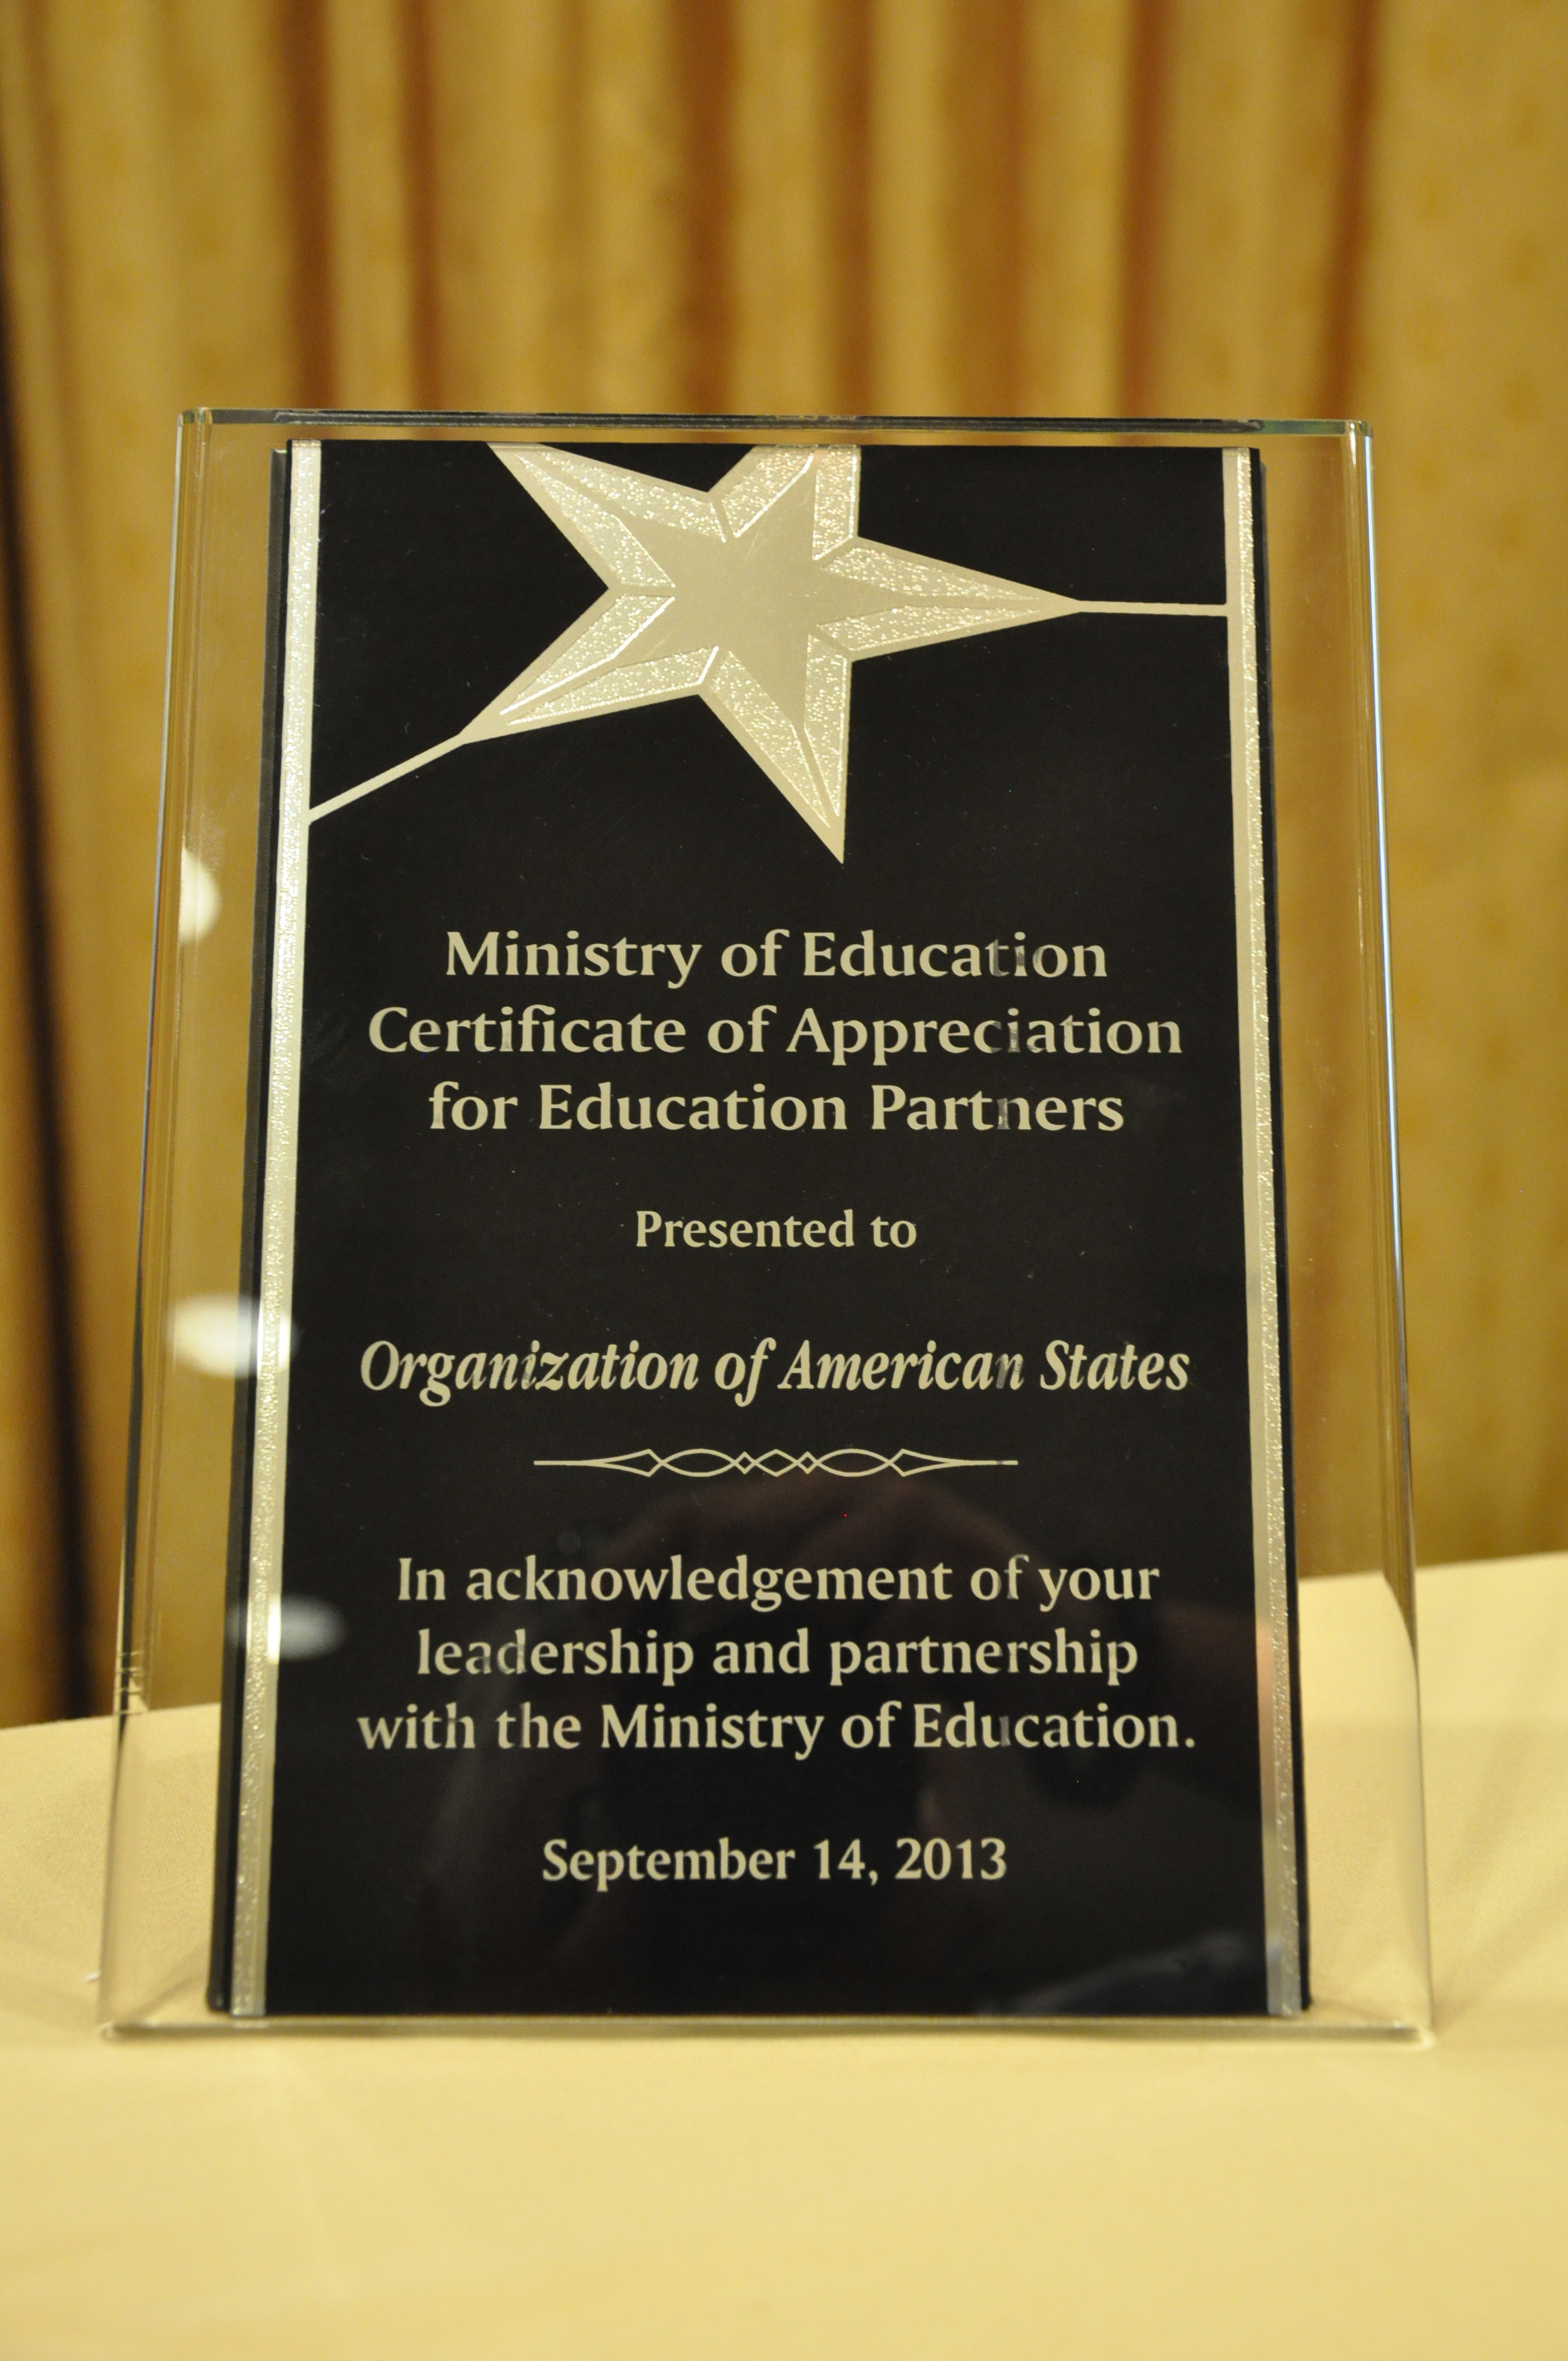 Organization of American States Received Education Partners Award